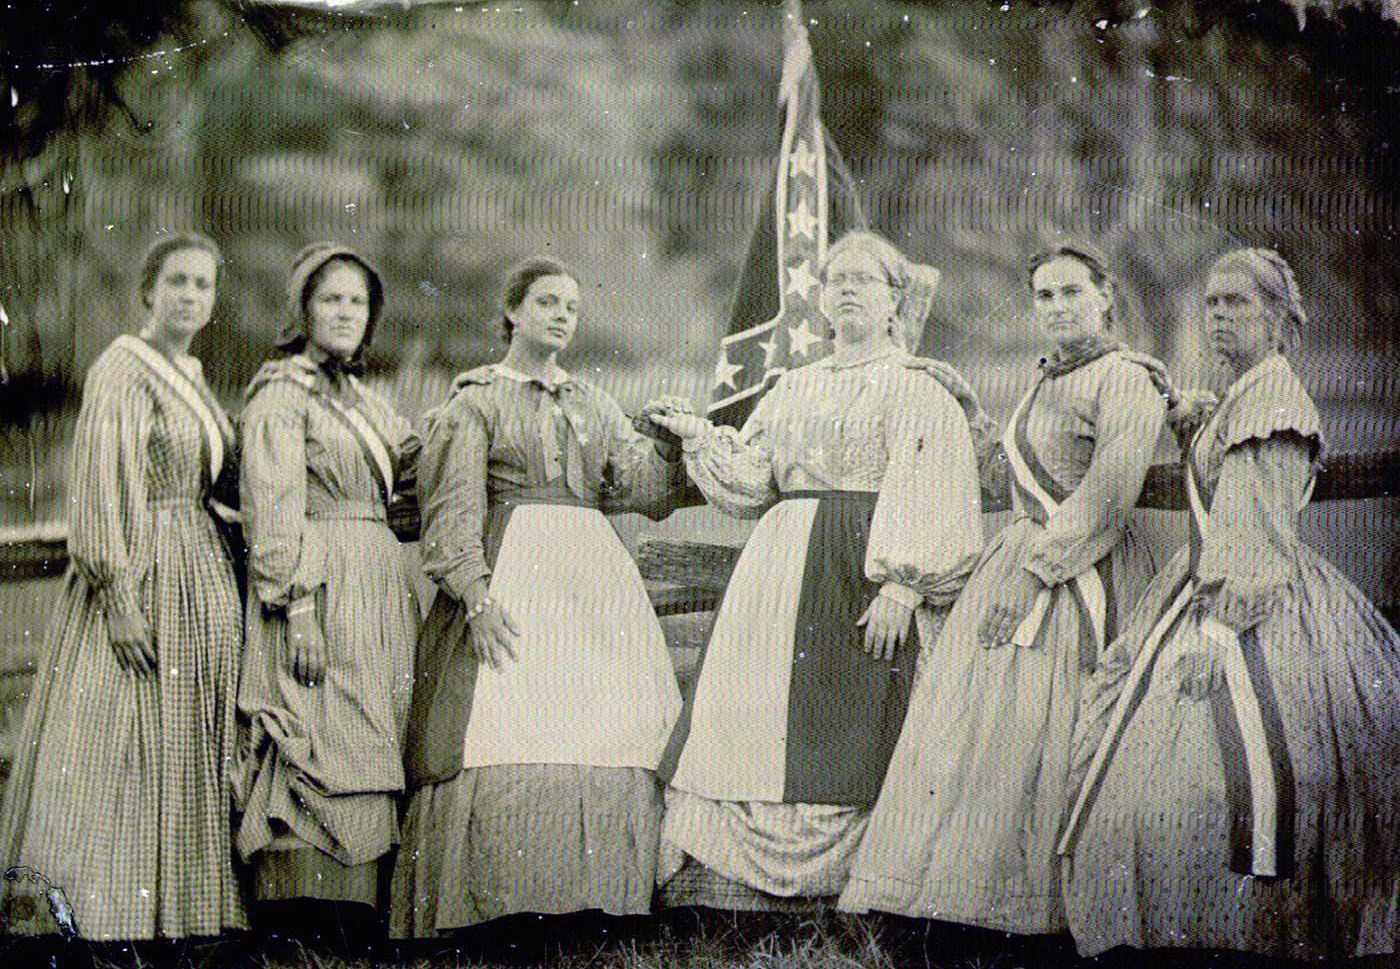 a report of the women in the civil war Women of the civil war era were severely restricted in their ability to travel widely on their own and to experience the freedom that men had in the human adventure, unless they didn't mind being considered immoraquot or loose women.